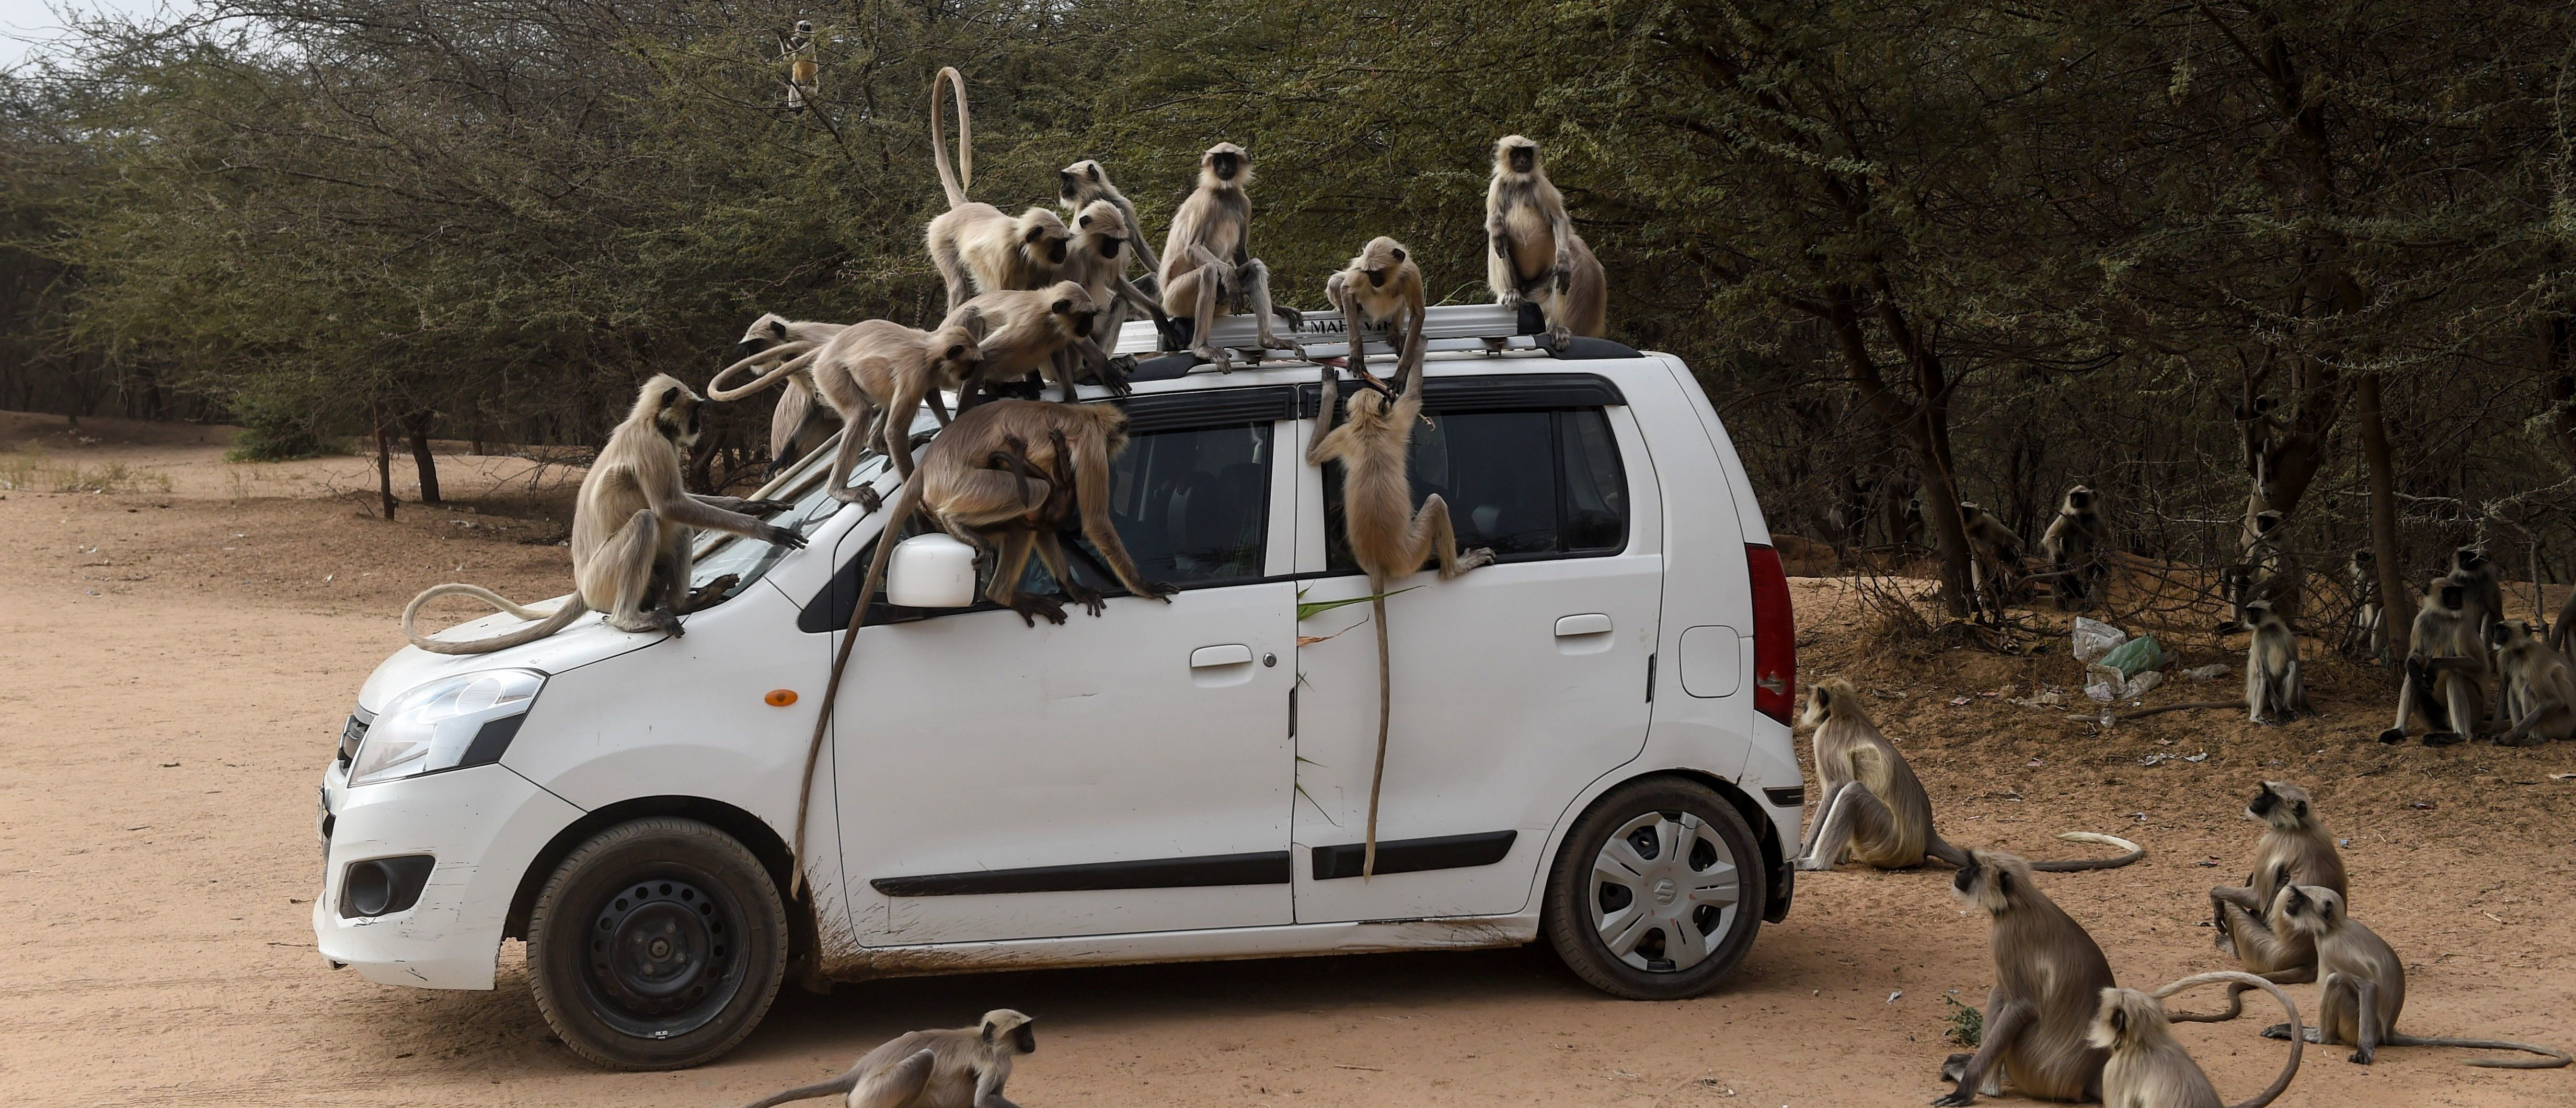 Monkeys In India Attack Lab Assistant And Steal...